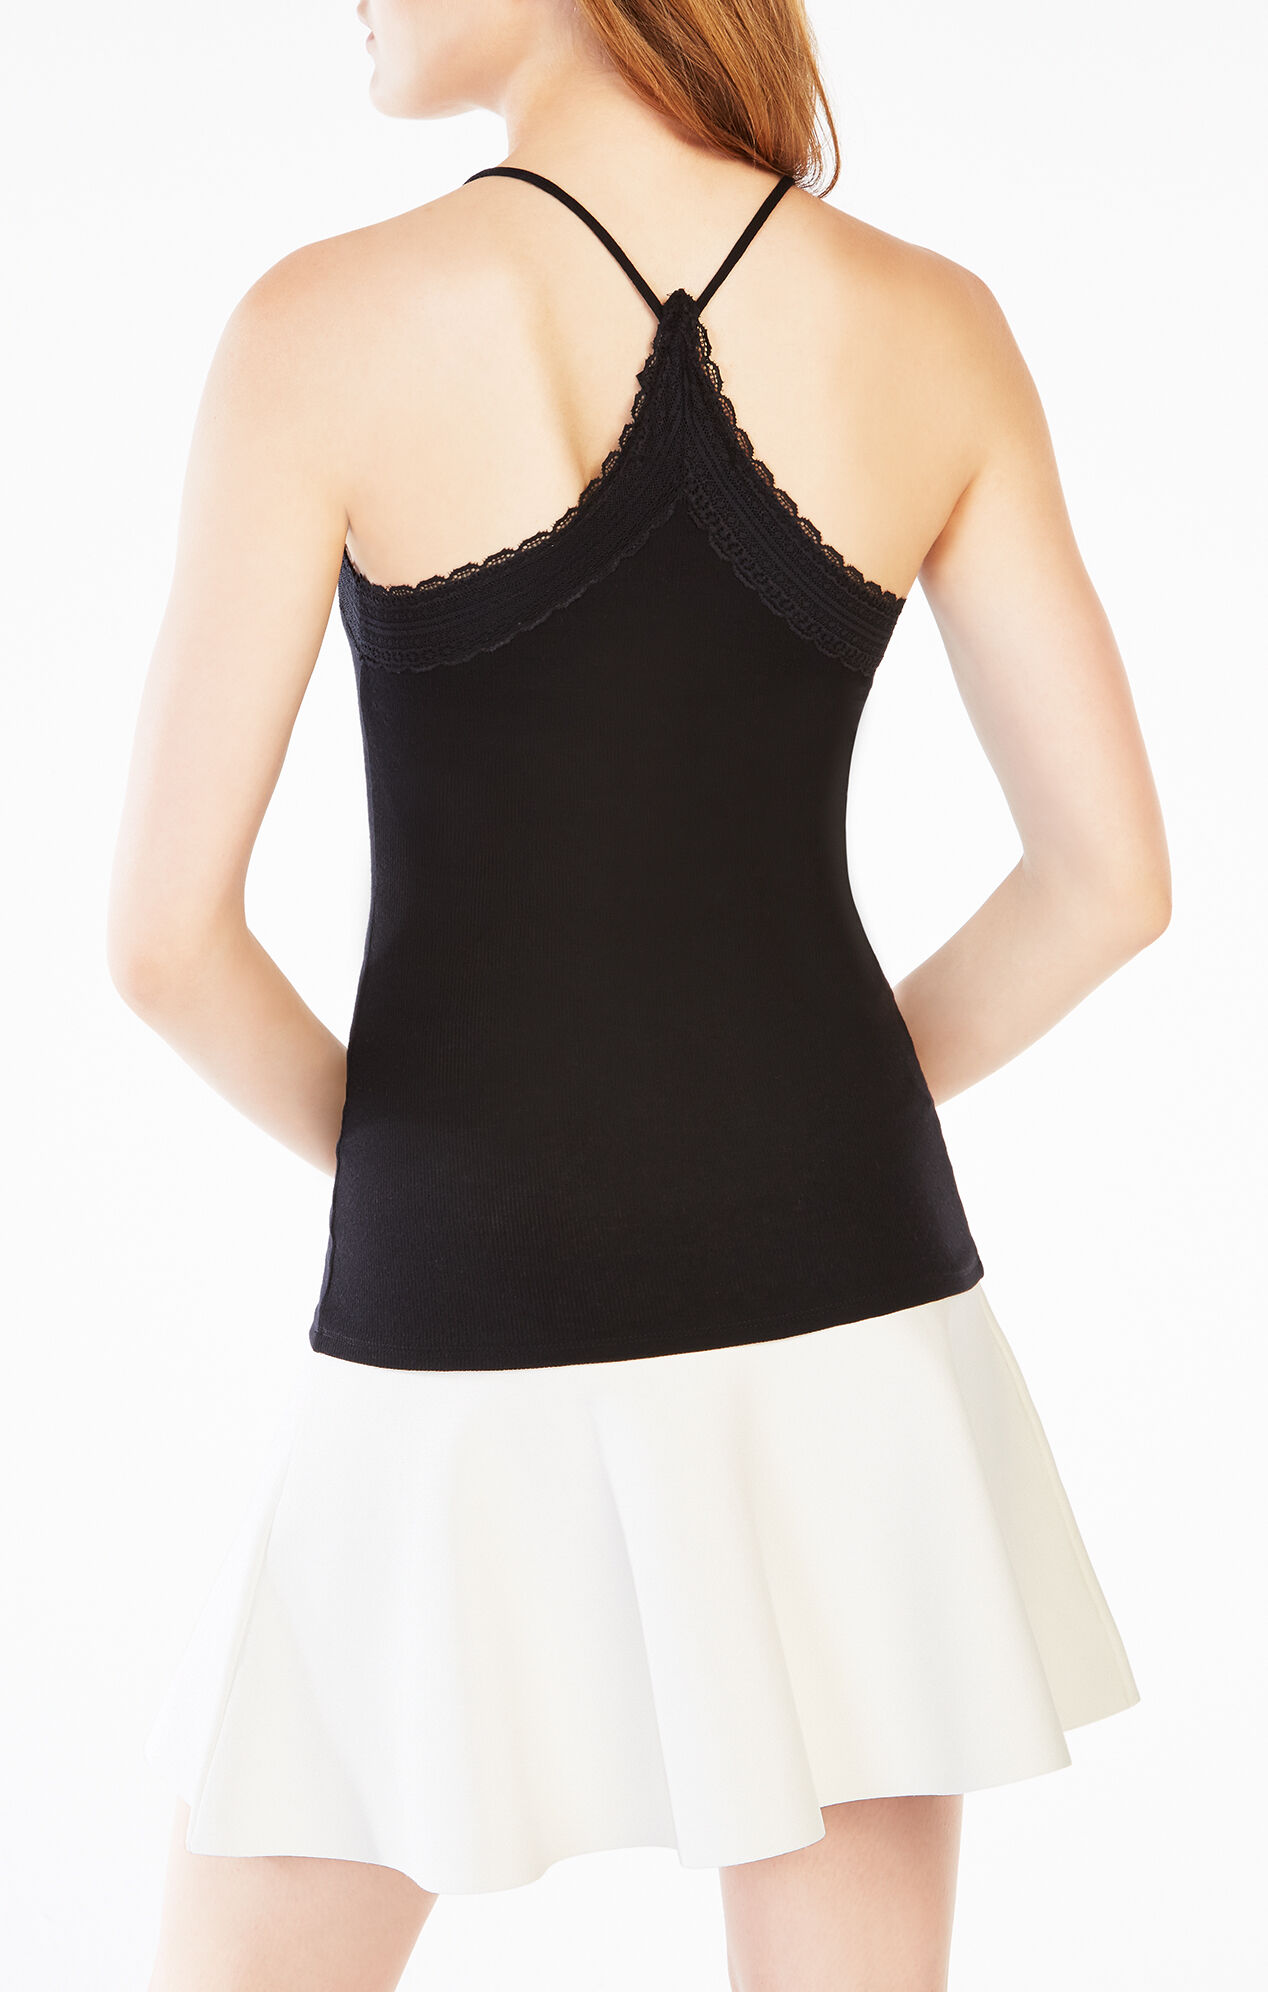 A comfy ribbed tank with a pretty lace trim that's perfect on its own or layered under your favorite blazers, sweaters, and low-cut dresses. Cotton/poly/spandex.